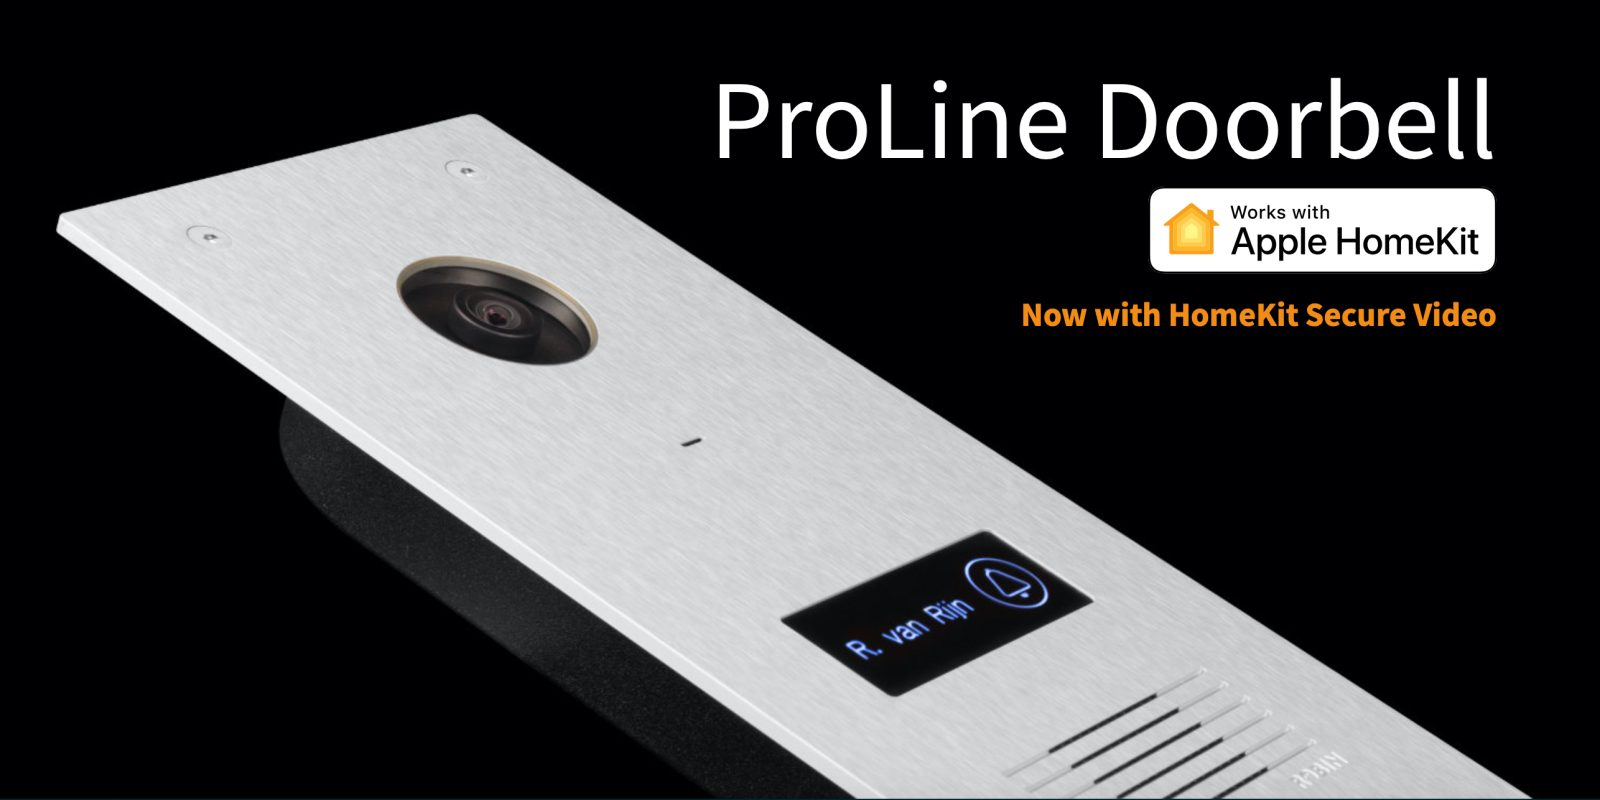 Robin ProLine is the first HomeKit Secure Video doorbell